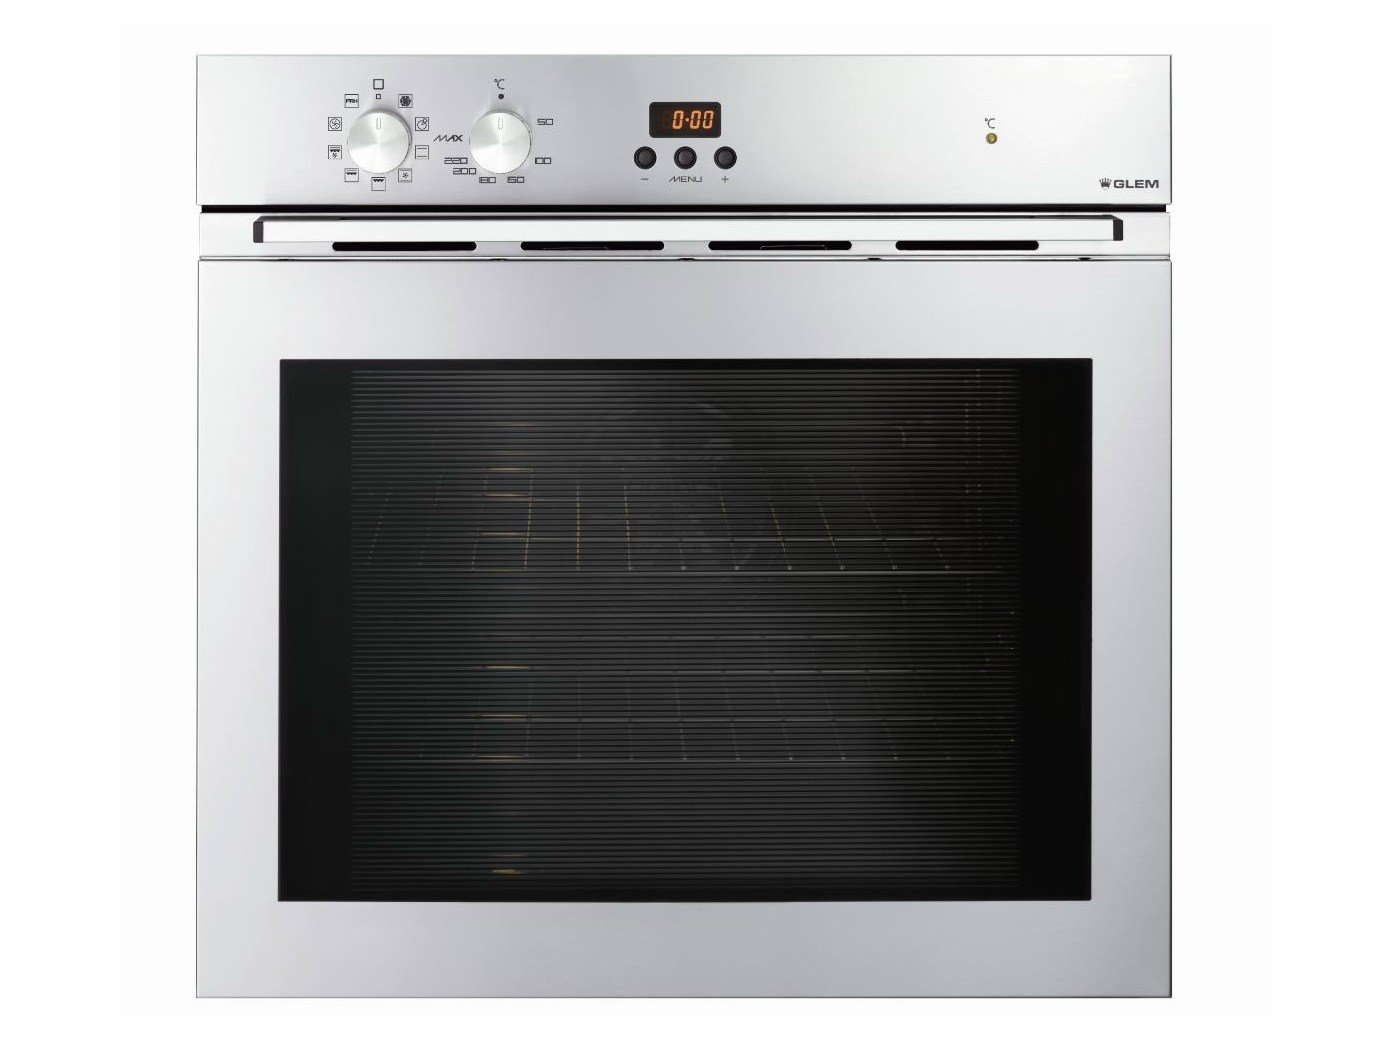 Electric built in oven class a excellence gfea93ix by - Cucine glem gas opinioni ...